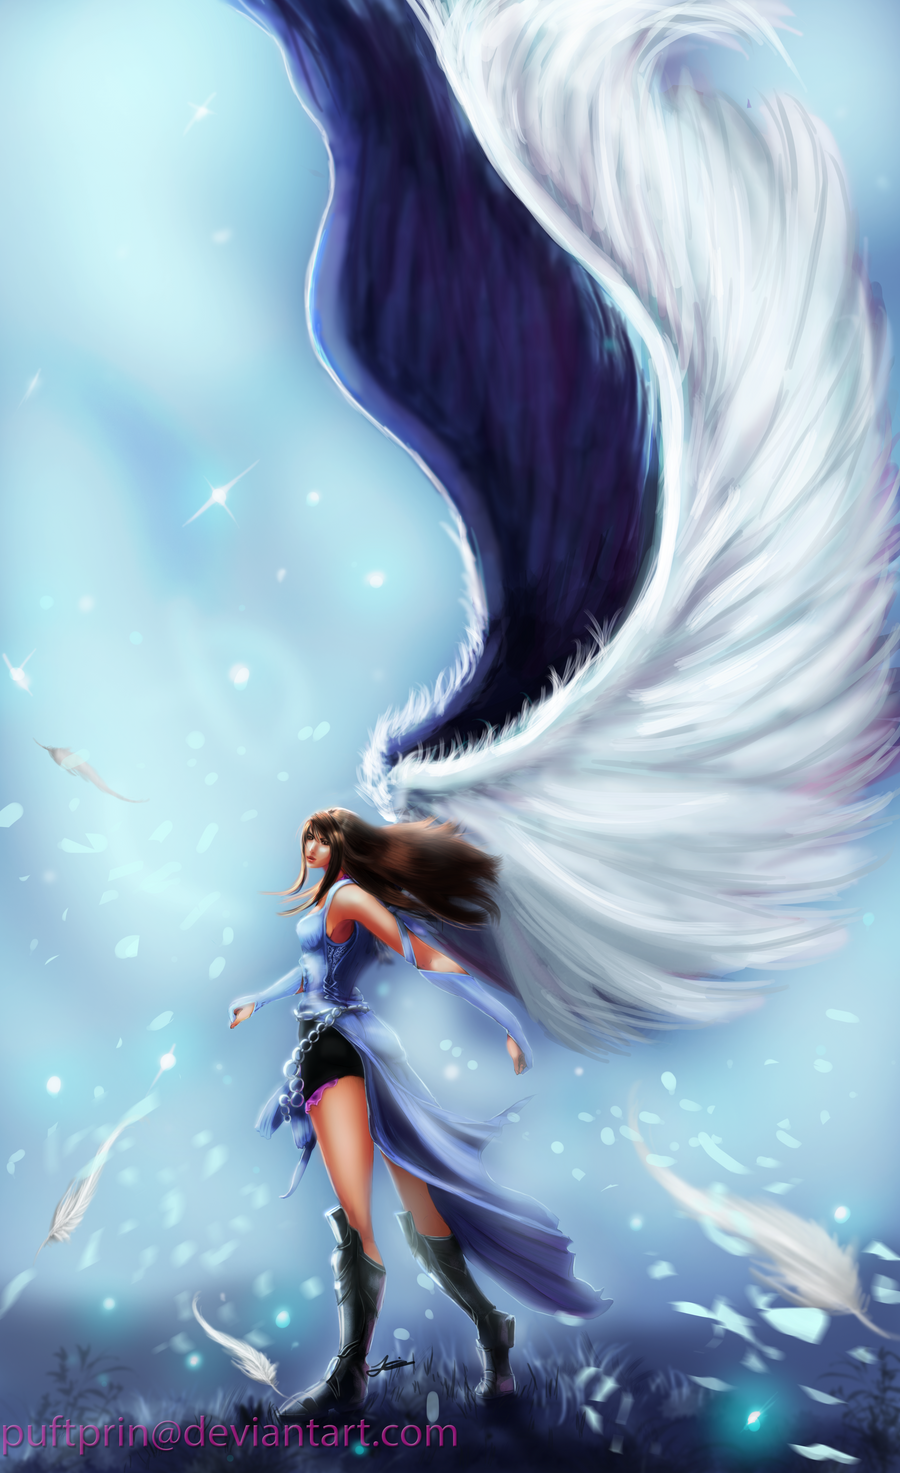 http://img10.deviantart.net/0613/i/2016/228/f/8/lullaby_wings_by_puftprin-dae5ju5.png